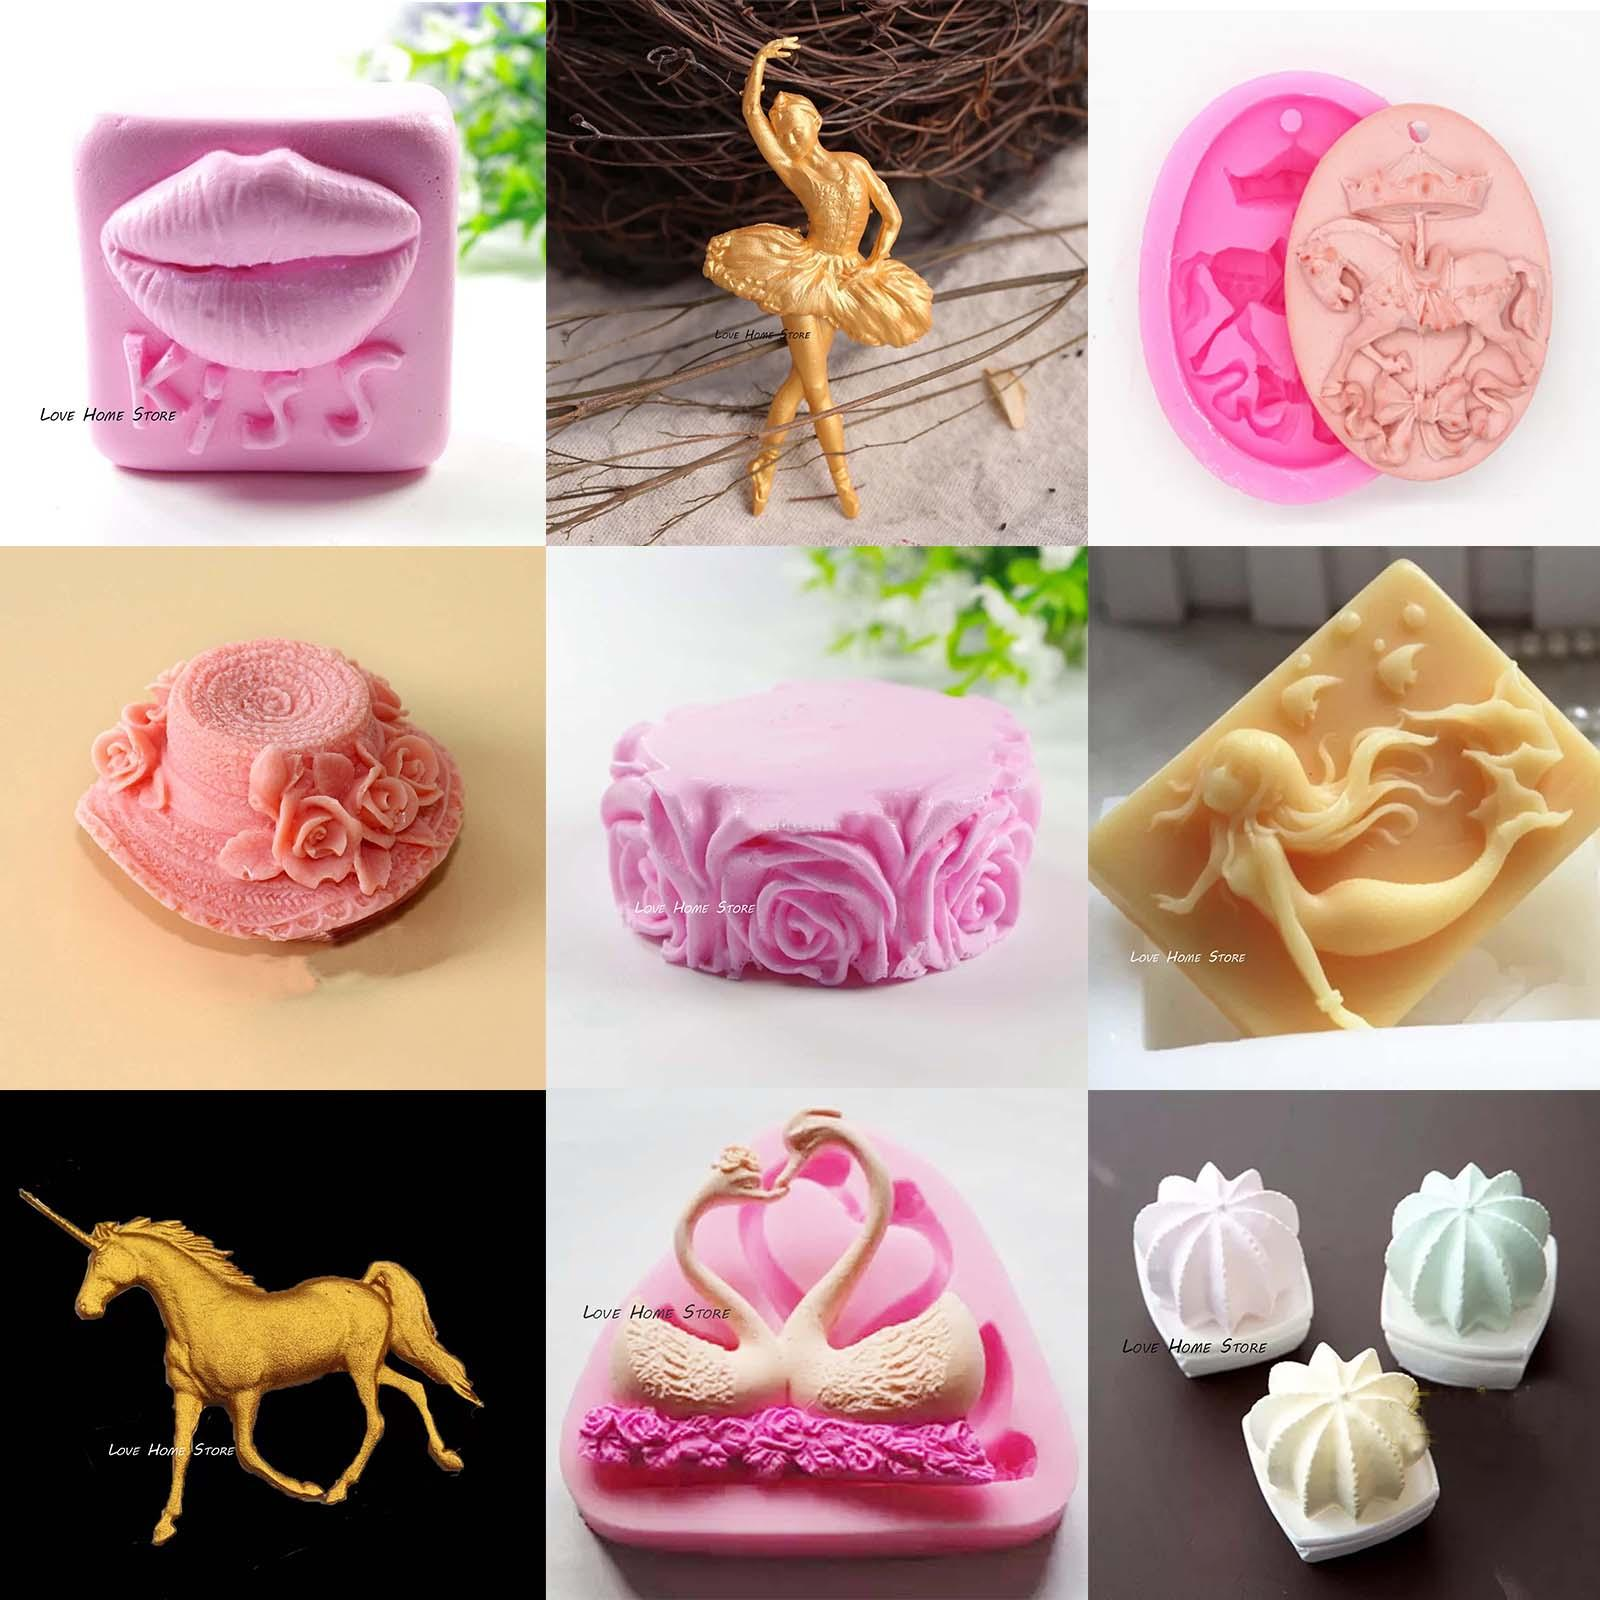 3D DIY mixed Silicone Molds Decoration Fondant chocolate Jelly ICE biscuit Cake candle Decorating Baking Tools handmade soap mold